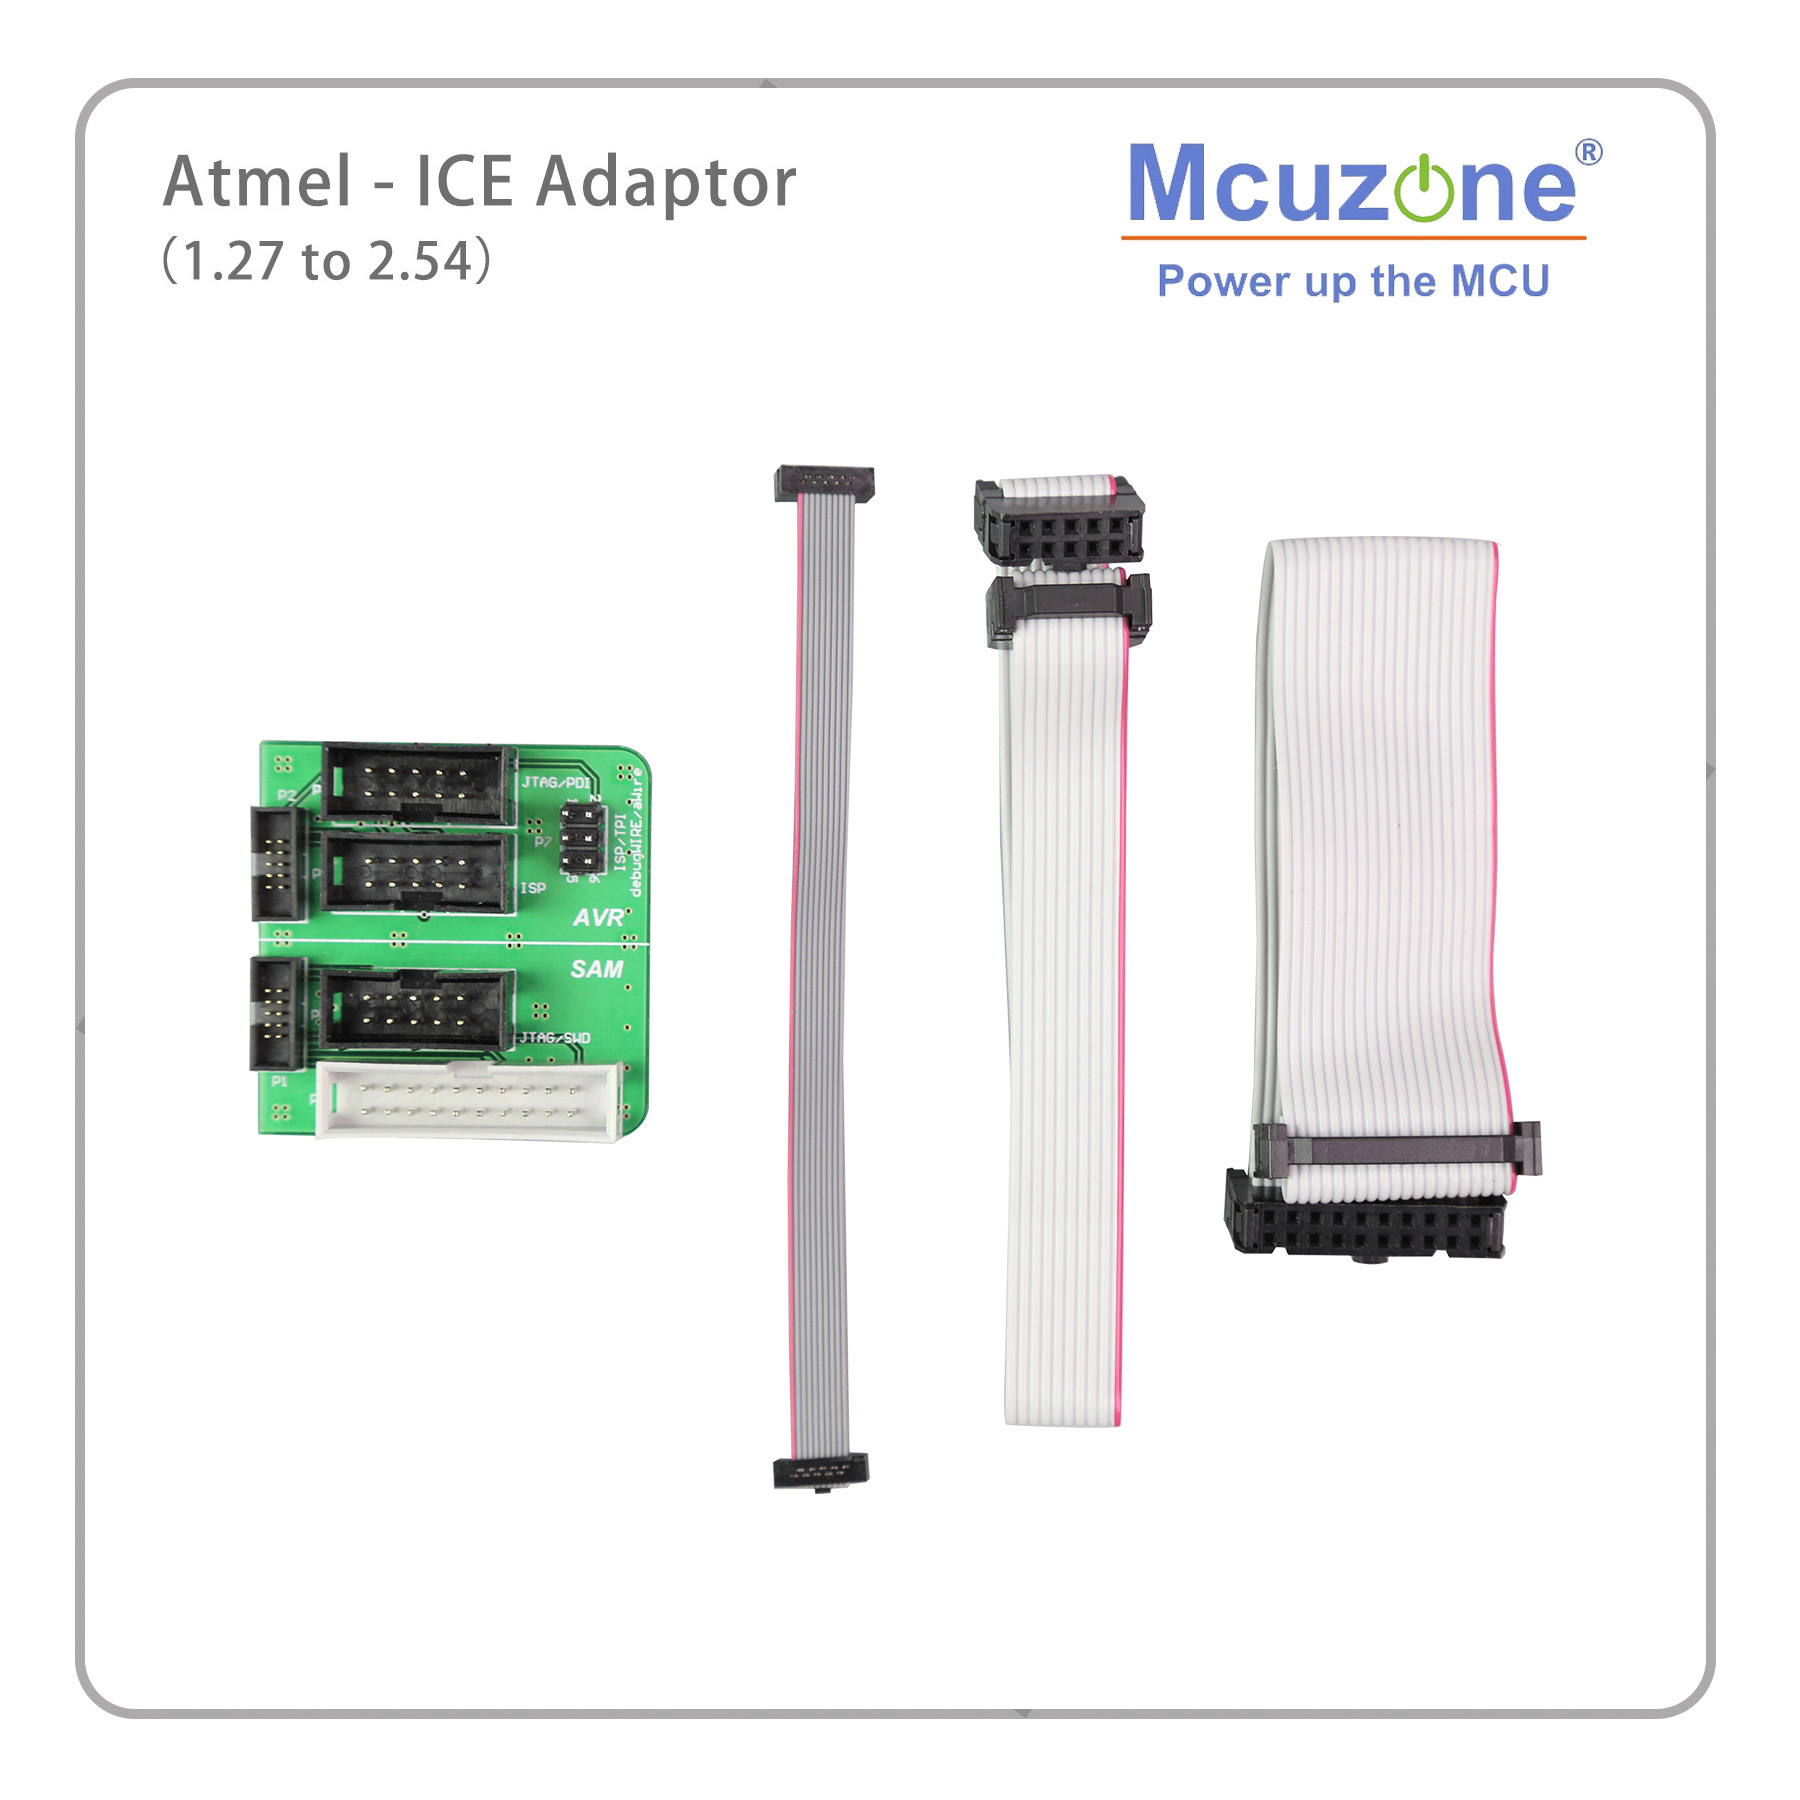 Mcuzone Atmel-ICE  Adapter Board   1.27 TO 2.54  AVR(ISP JTAG PDI TPI) SAM(JTAG SWD) ATATMEL-ICE-ADPT Atmel-ICE Adapter Kit